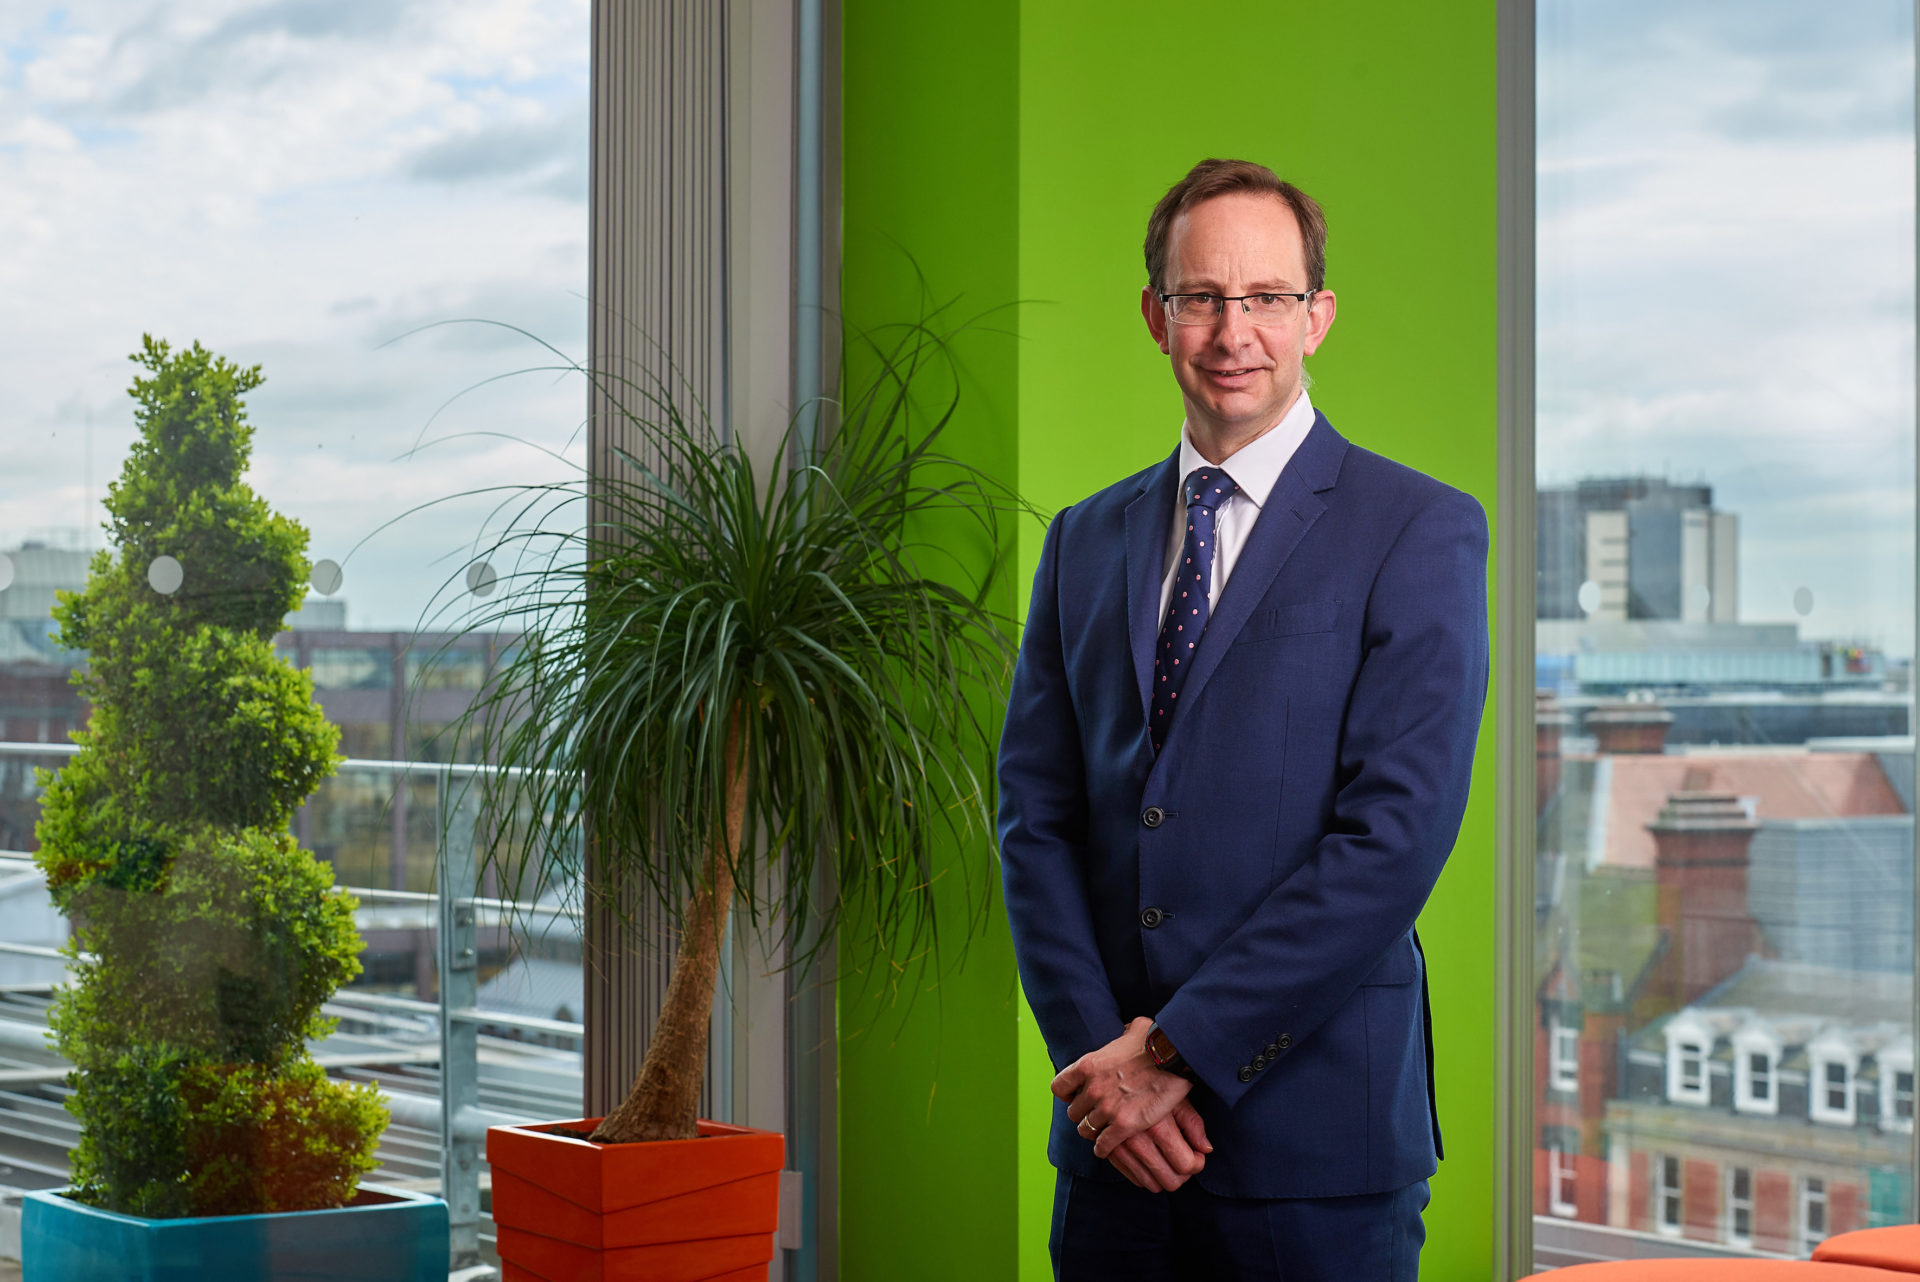 Matthew Wort, partner at Anthony Collins Solicitors